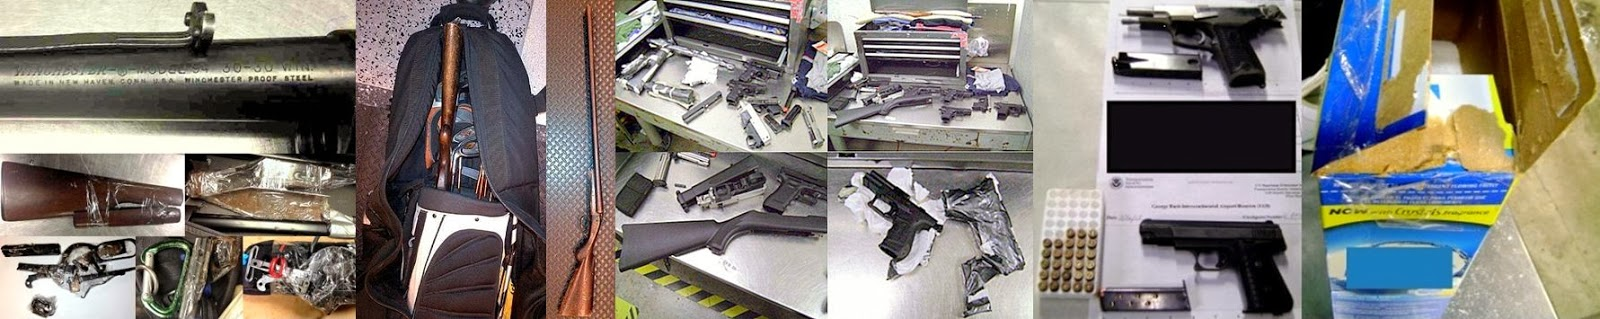 Left to Right: Unassembled Rifle (BOS), Shotgun in Golf Bag (DTW), Seven Firearms in Toolbox (MIA), Guns In Detergent (IAH)